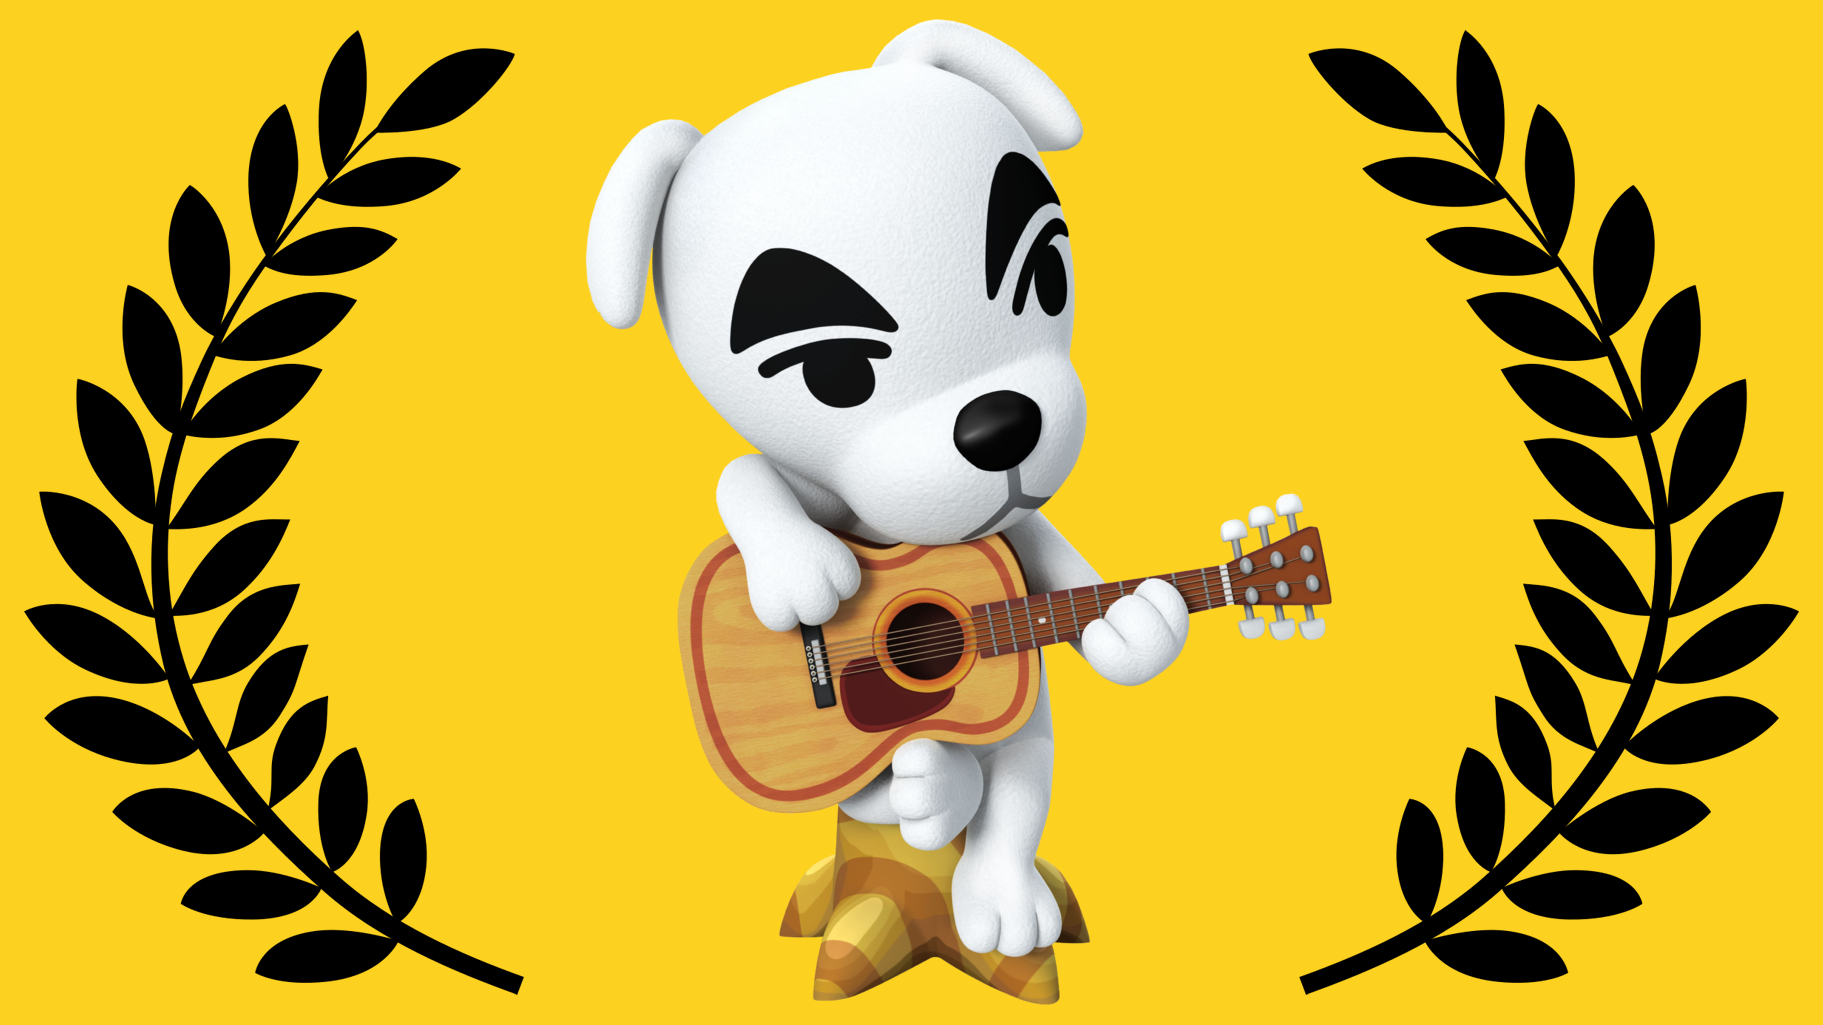 K.K. Slider Is The Most Influential Musician Of Our Generation